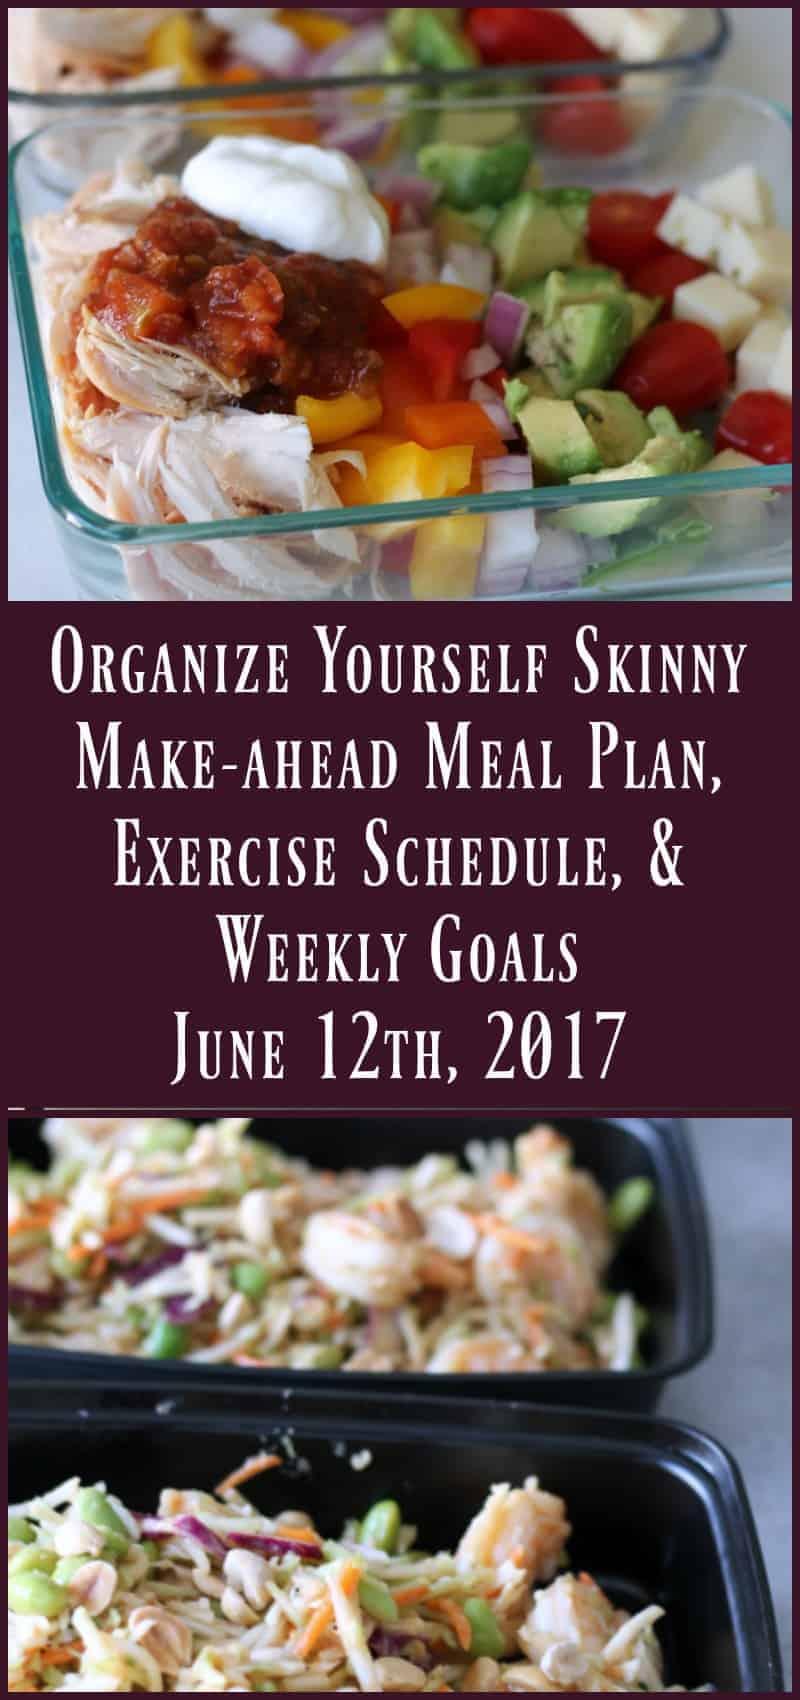 Make-ahead Meal Plan, Exercise Schedule, and Weekly Goals {June 12th, 2017}